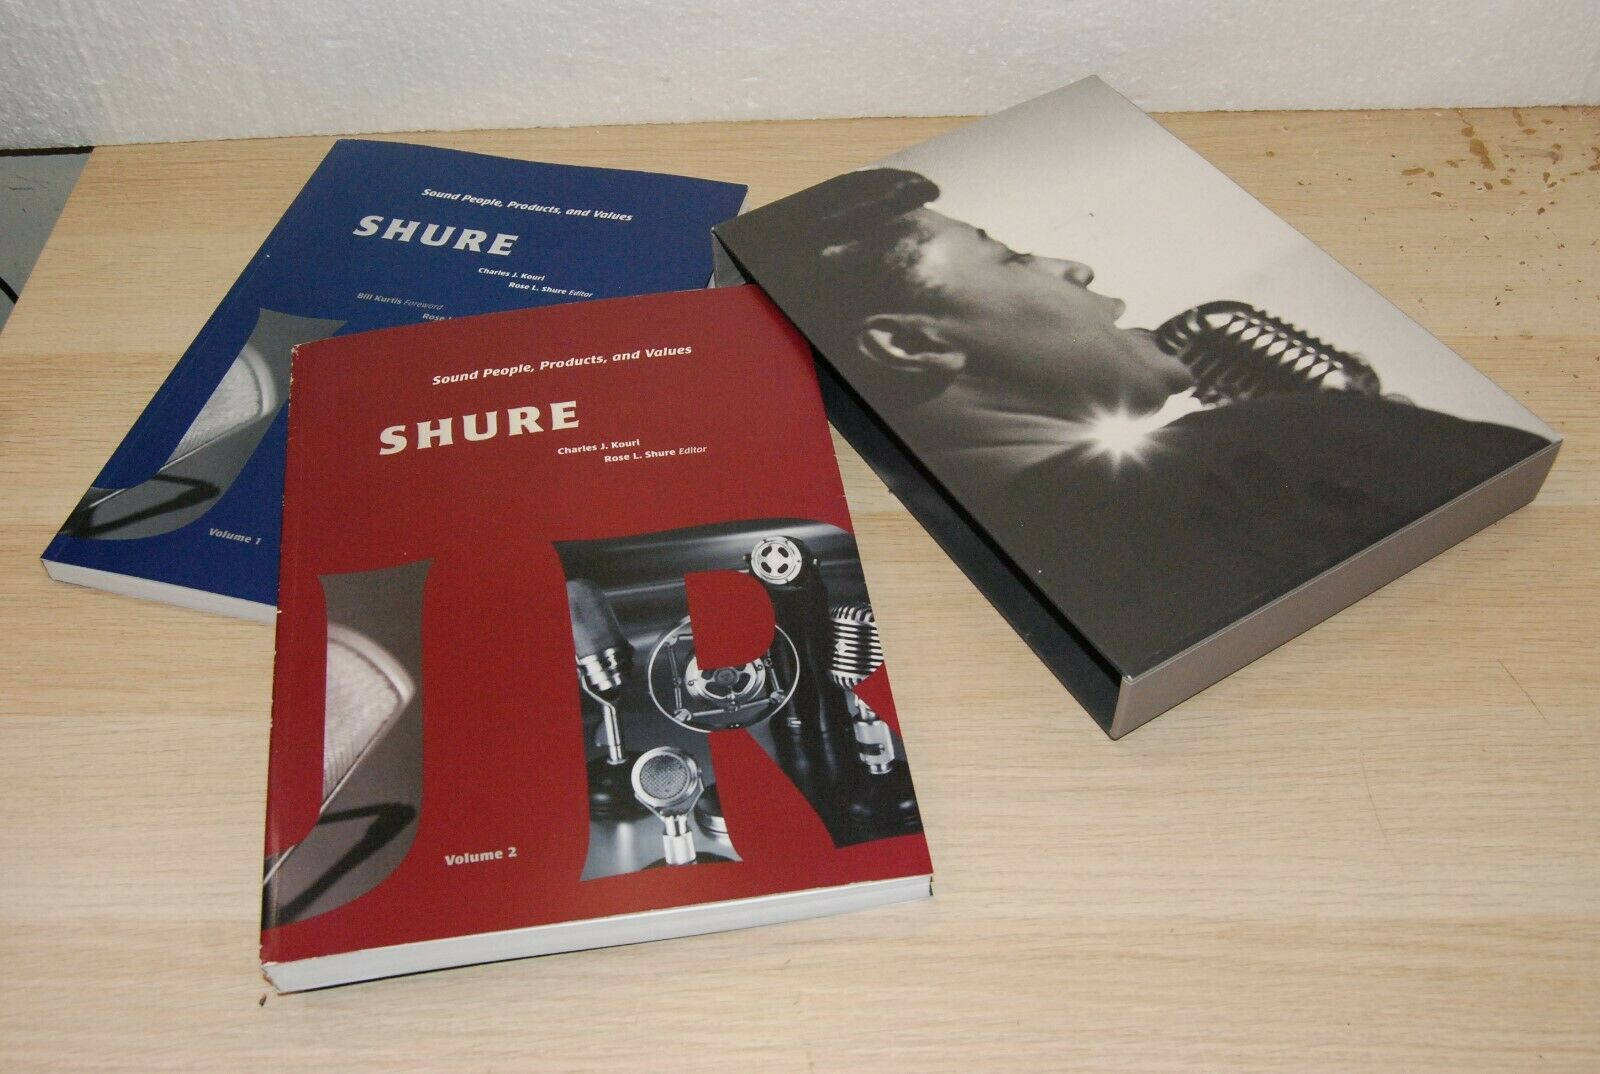 Vintage SHURE Sound People Products and Values By Charles J.Koul